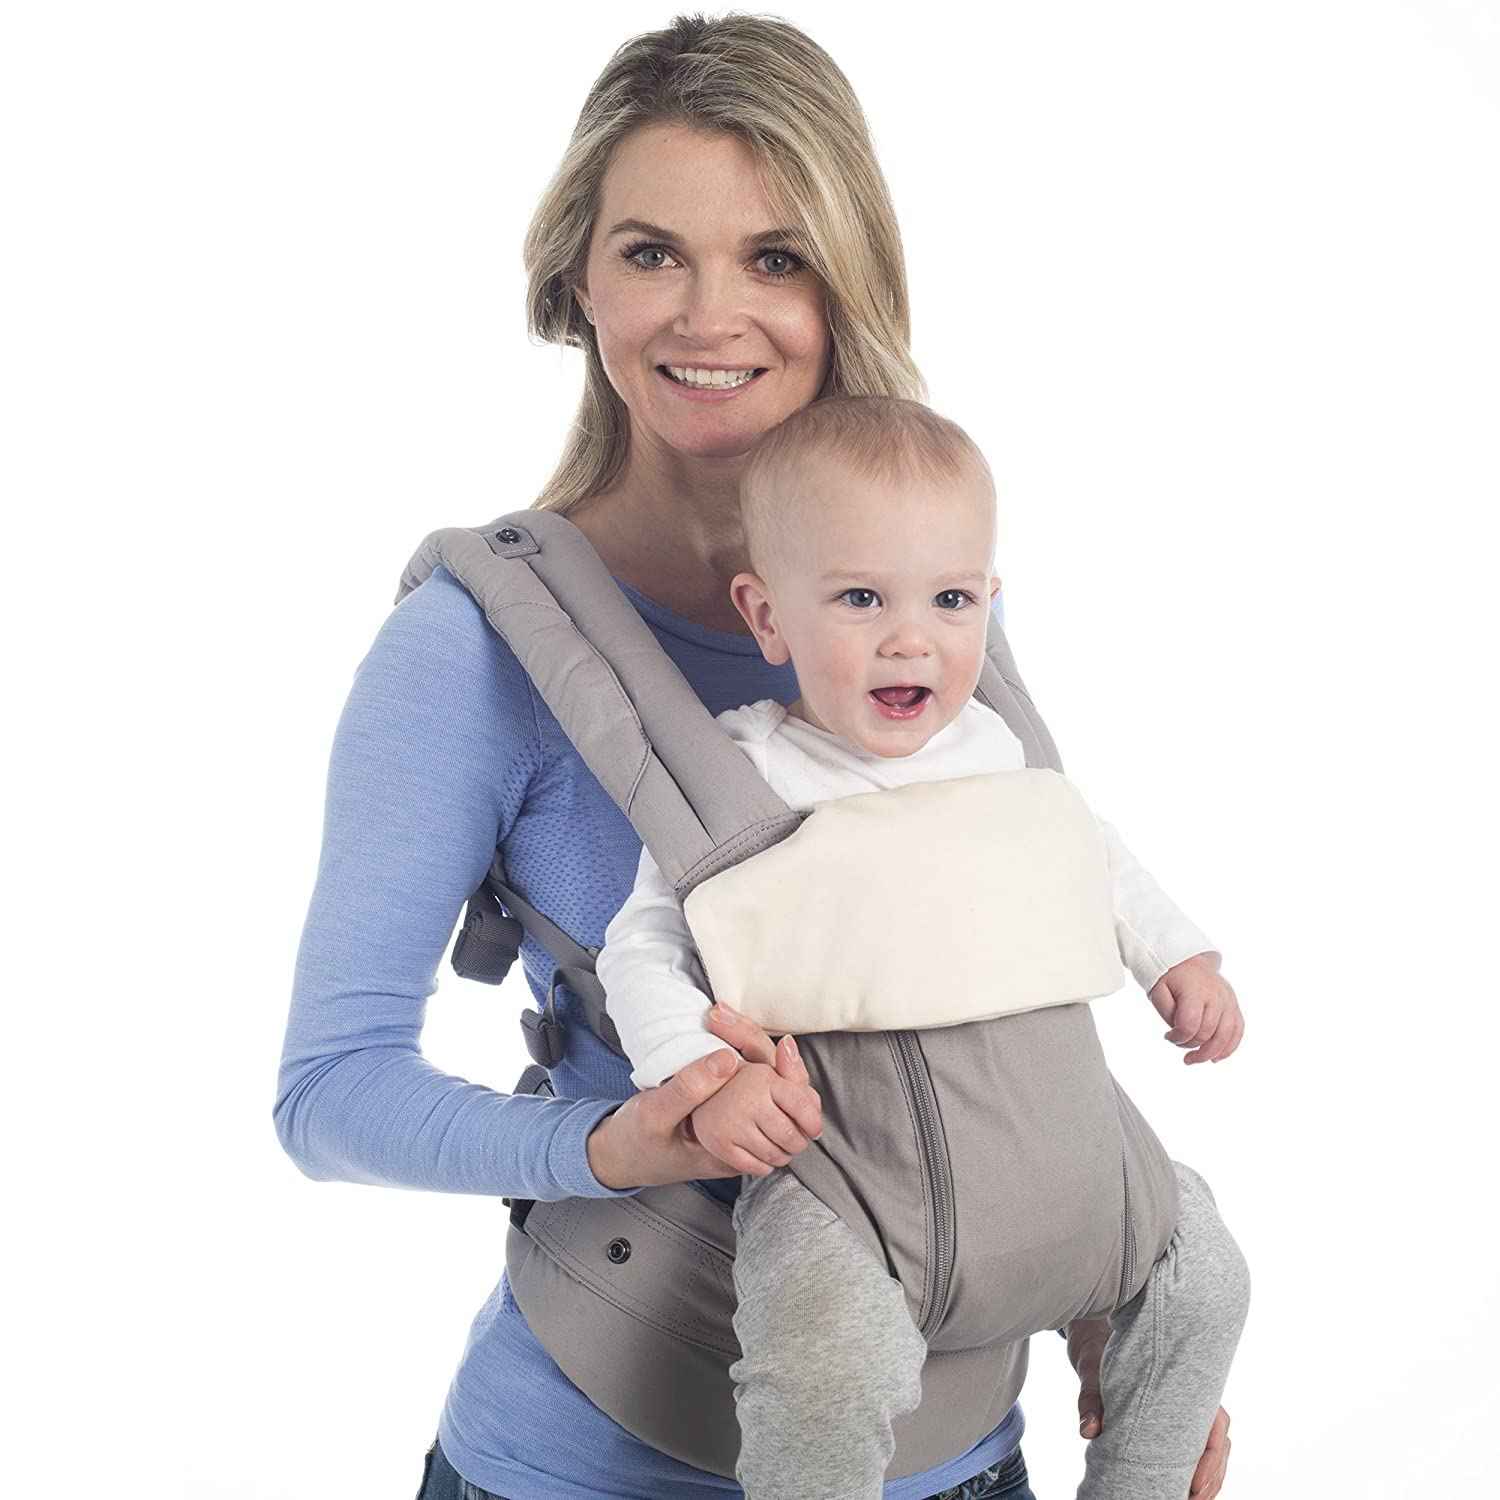 LÍLLÉbaby Organic Front Teething Bib, Natural - Organic Cotton Teething Bib for Baby Carrier LILLEbaby ASC-TPN-020-FB